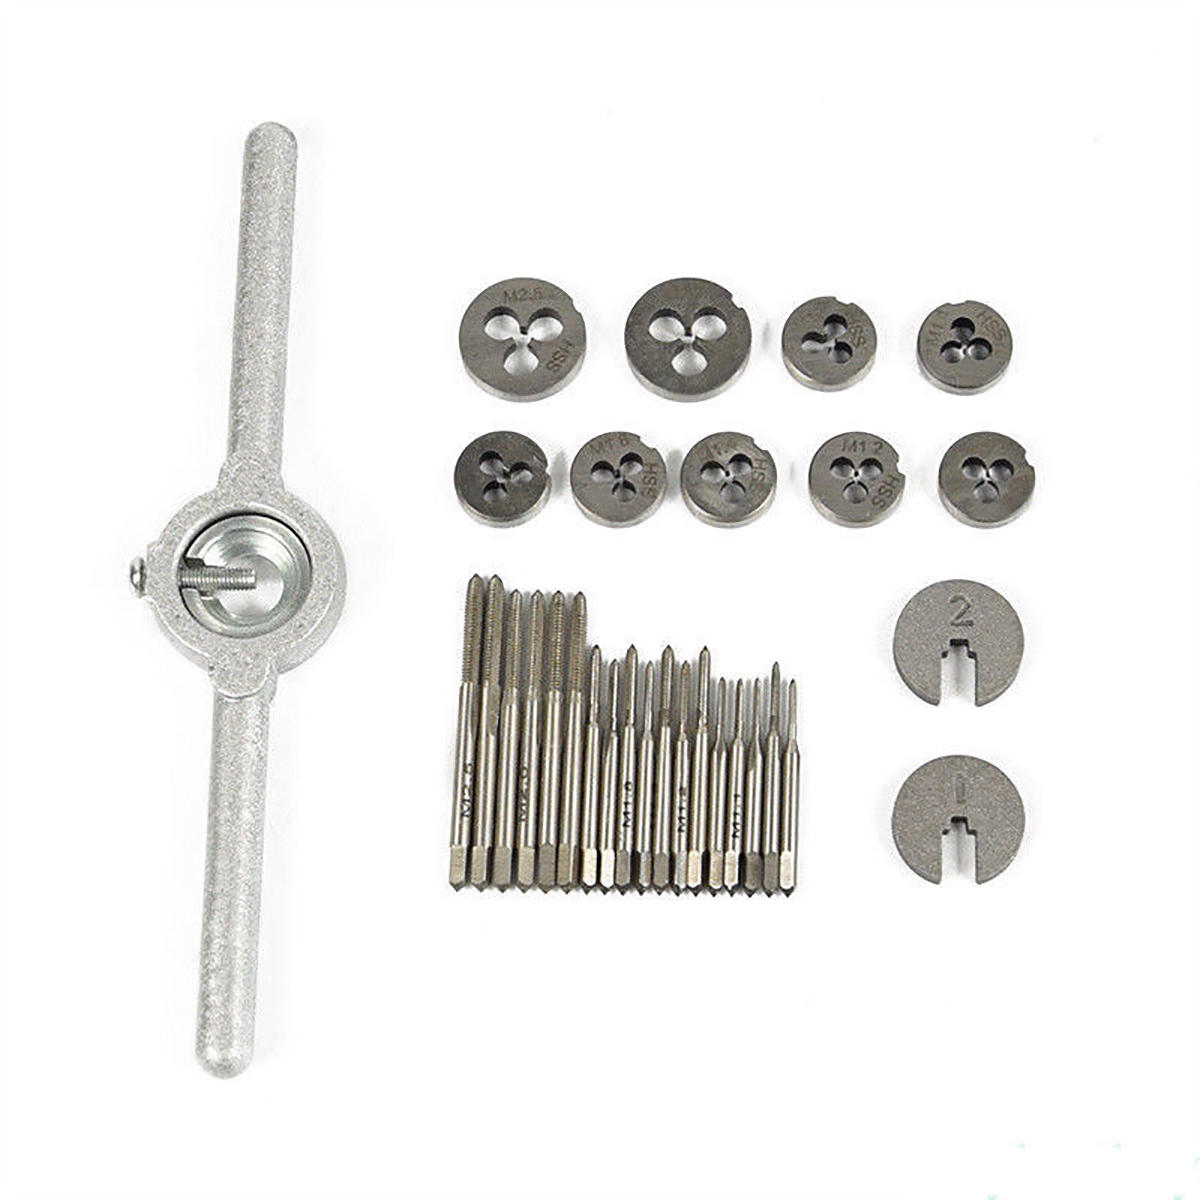 31pcs Mini High Speed Steel Metric Tap And Die Set with Box For Model Making Watchmaker 60 pcs set tap and die sets m3 m12 metric screw plugs taps